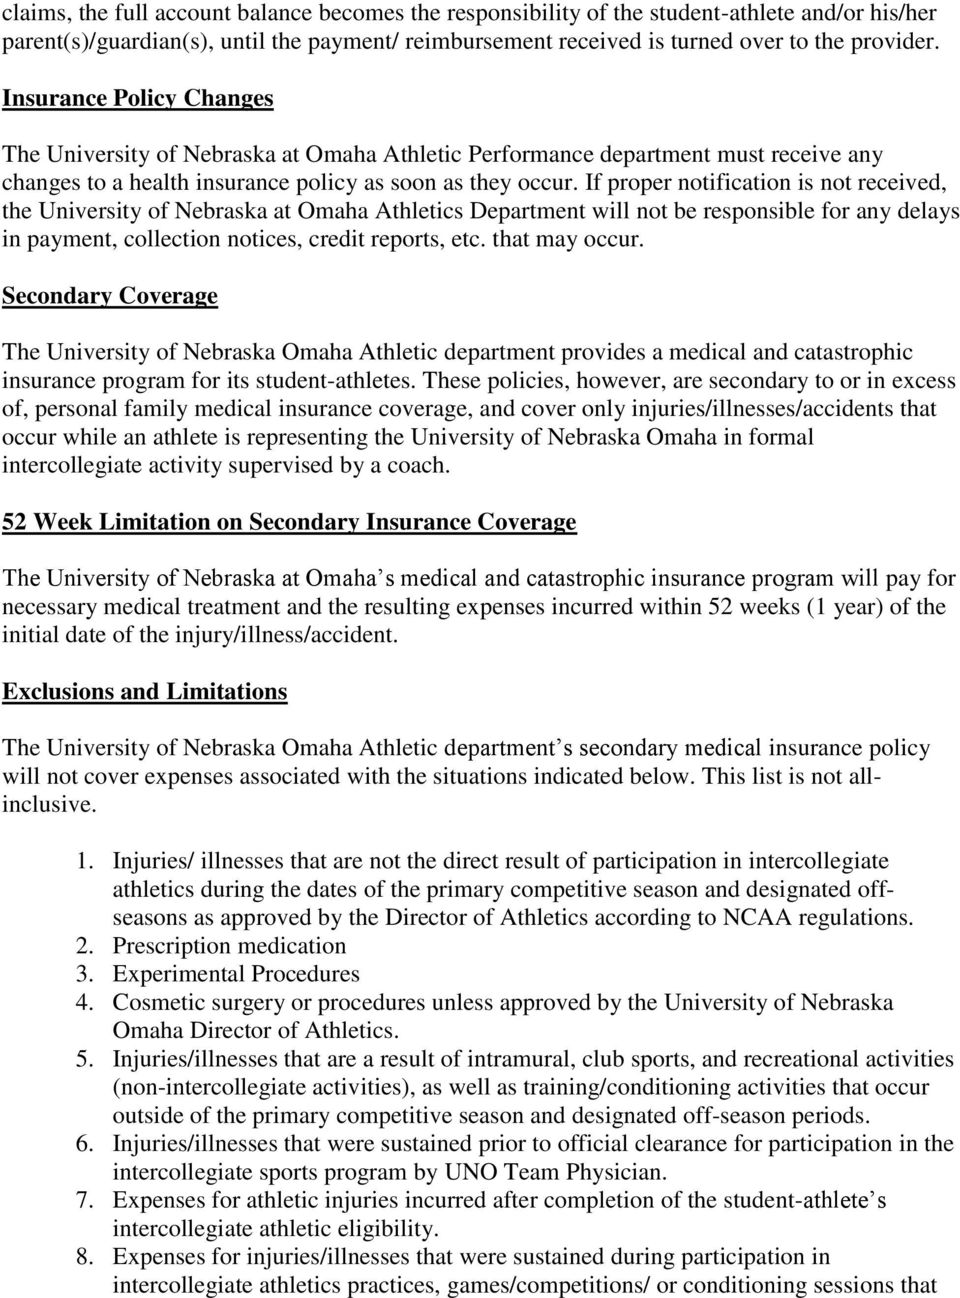 If proper notification is not received, the University of Nebraska at Omaha Athletics Department will not be responsible for any delays in payment, collection notices, credit reports, etc.